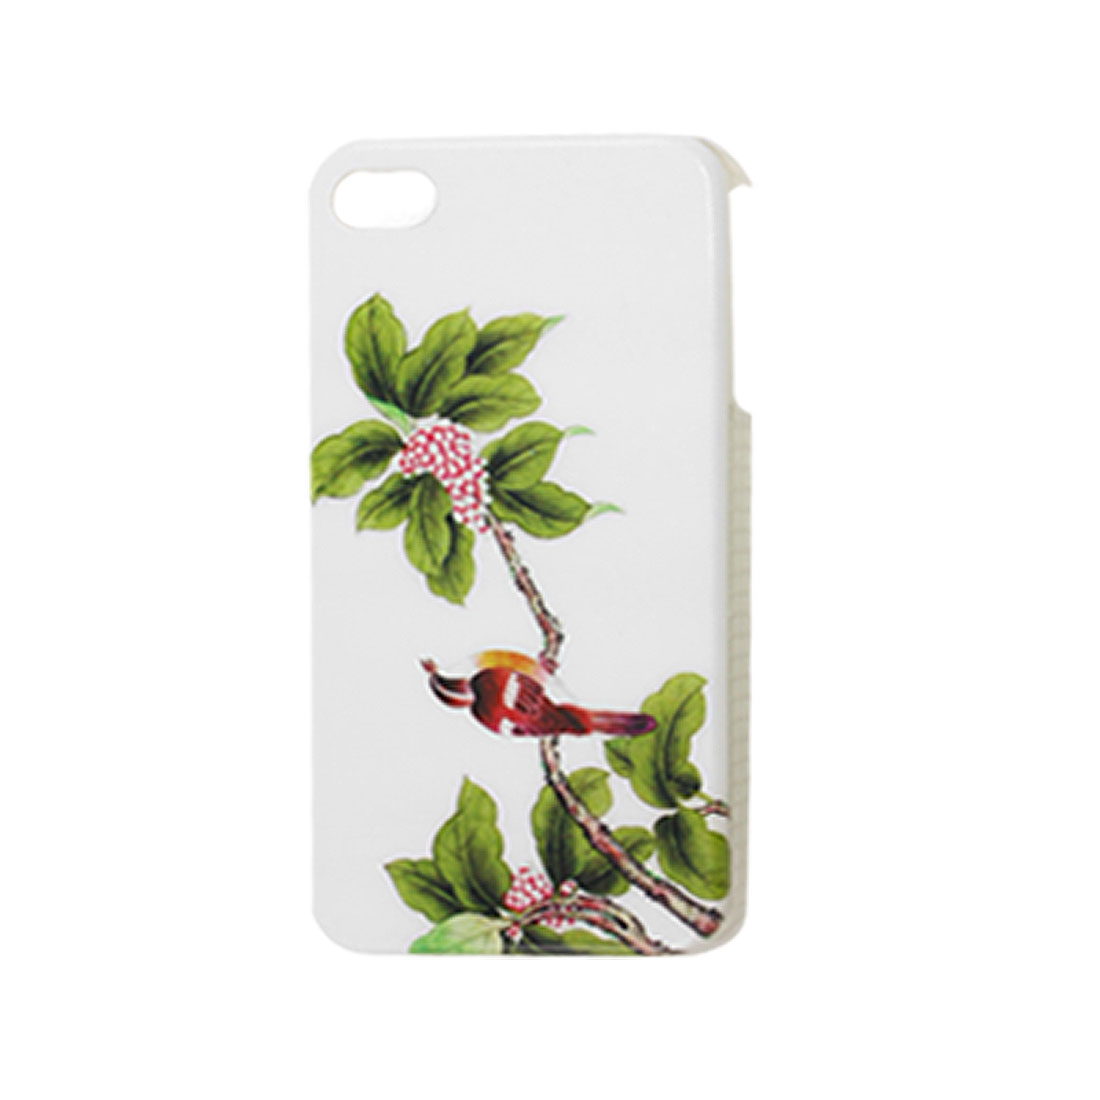 Burgundy Bird Red Leaves White Hard Plastic IMD Back Case for iPhone 4 4G 4S